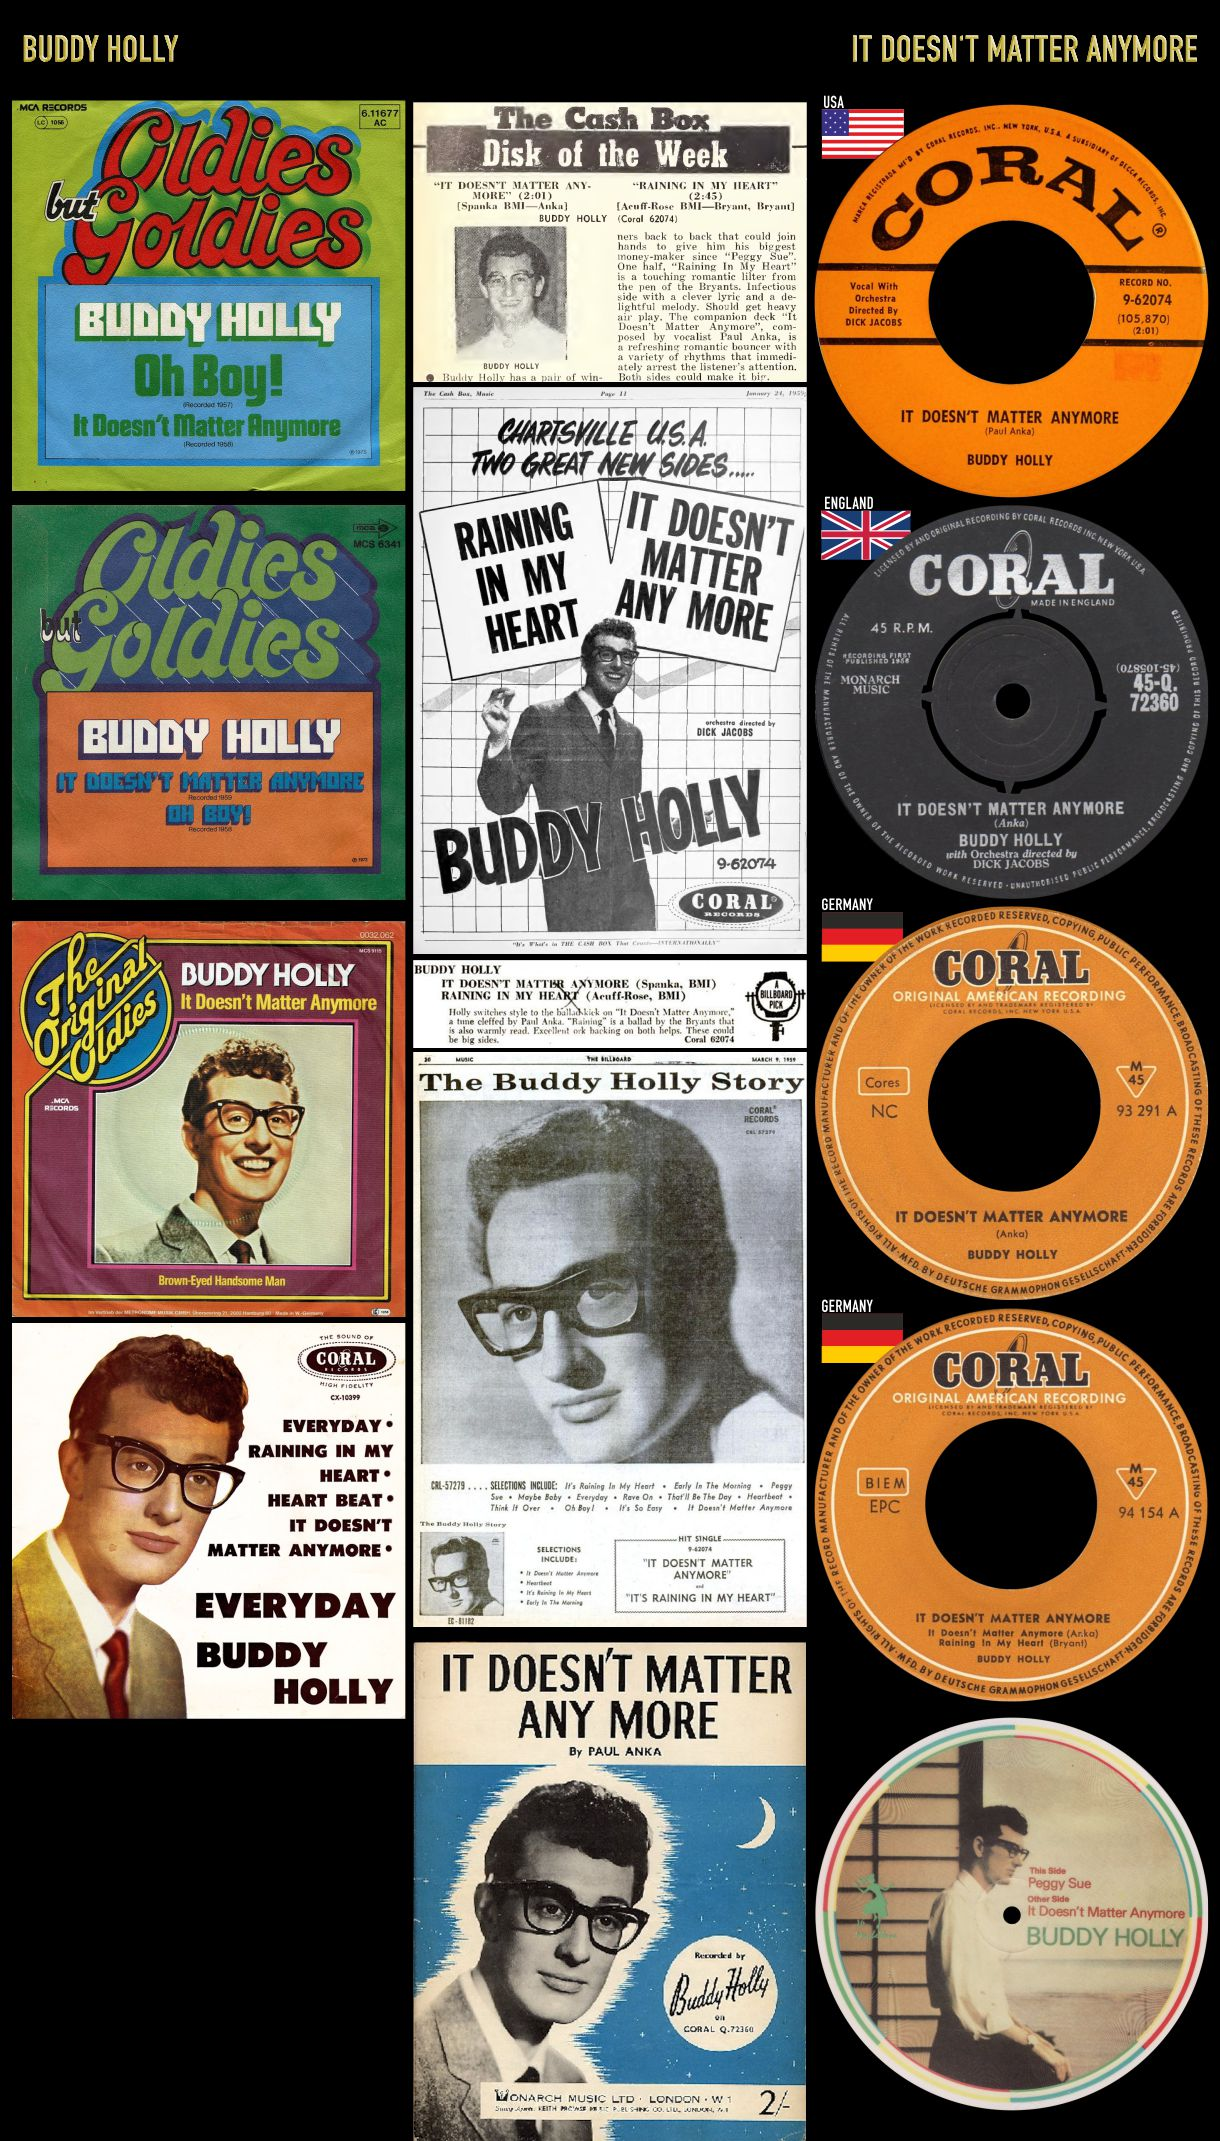 590425_Buddy Holly_It Doesen't Matter Anymore